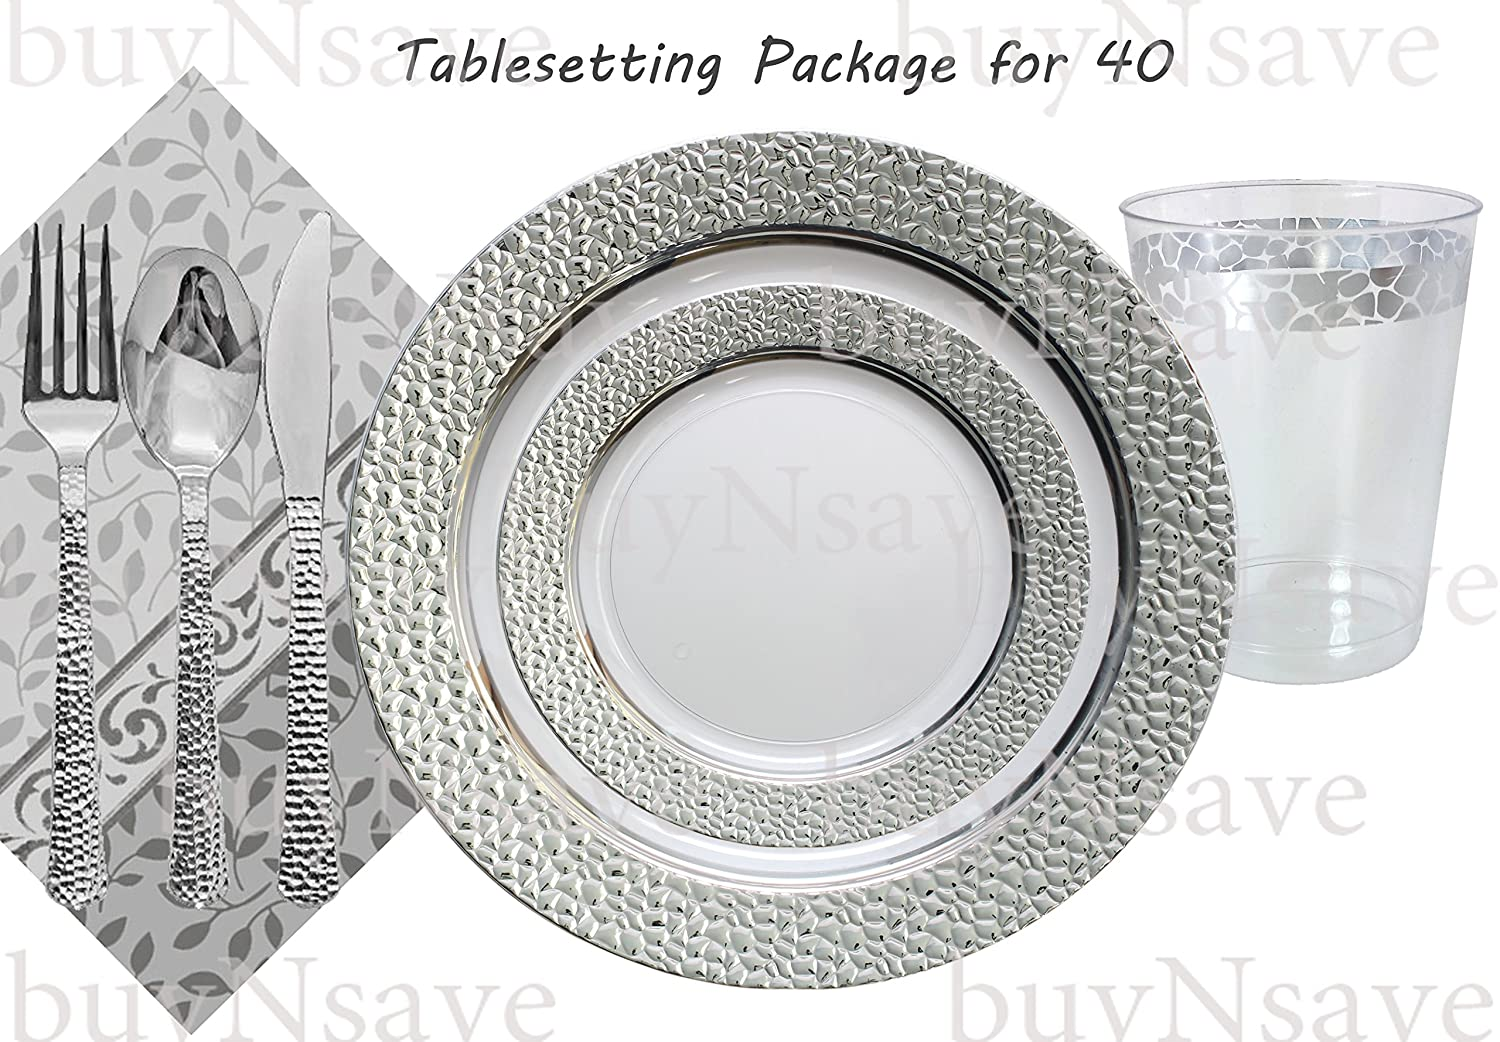 Amazon.com Elegant Wedding Party Disposable Plastic Plates Hammered Clear with Silverfor 40 GuestsDinner Plates10.25 Salad Plates7 NapkinsTumblers ...  sc 1 st  Amazon.com : elegant plastic plates - pezcame.com